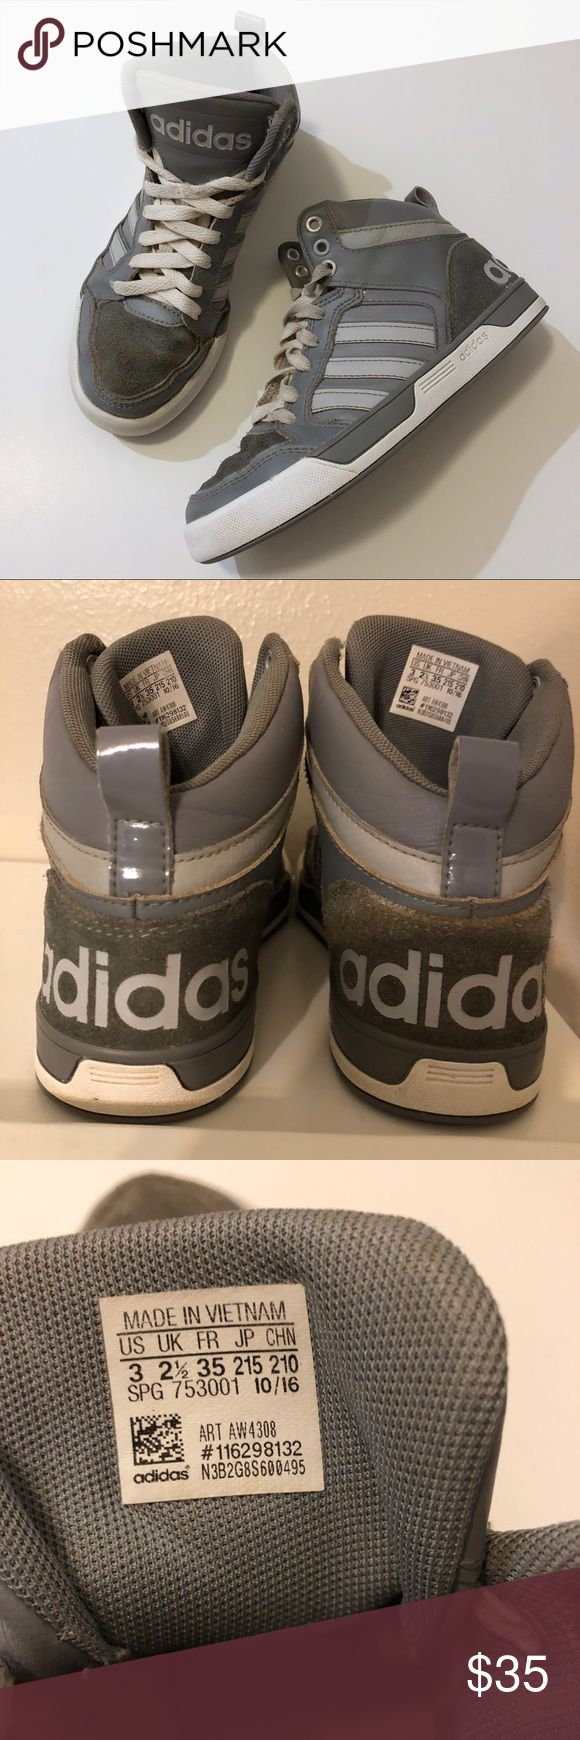 Adidas Neo Gray High Top Sneakers, Boys Size 3 Adidas Neo Raleigh Mid Top Little Boys sneakers. Gray shoes with white soles.  Synthetic upper, lace up front, rubber outsole.  Good condition. Normal wear and tear but structurally intact with no major damage! These have been lightly cleaned, but could use a thorough cleaning! :)  Ships same or next day from smoke free home. adidas Shoes Sneakers